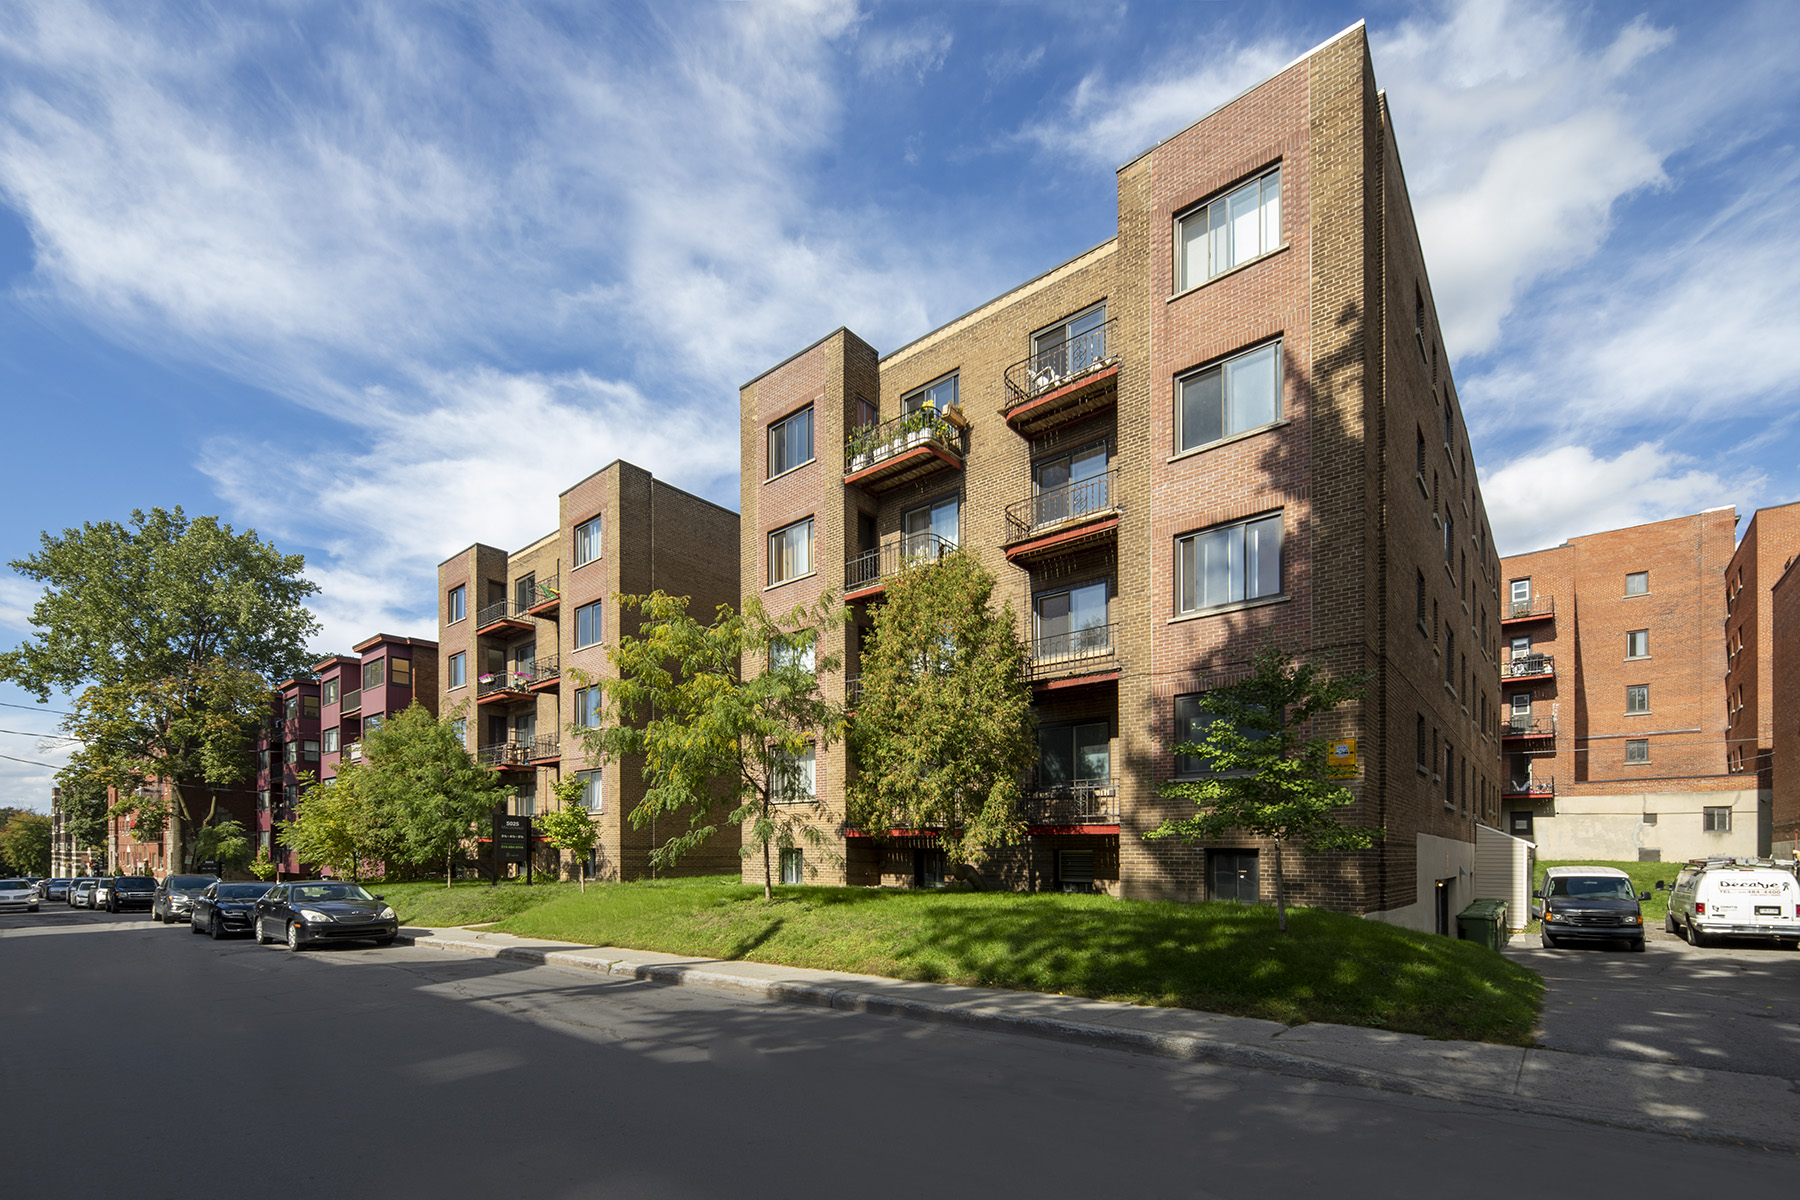 1 bedroom Apartments for rent in Cote-St-Luc at Les immeubles MacDonald - Photo 01 - RentQuebecApartments – L401535